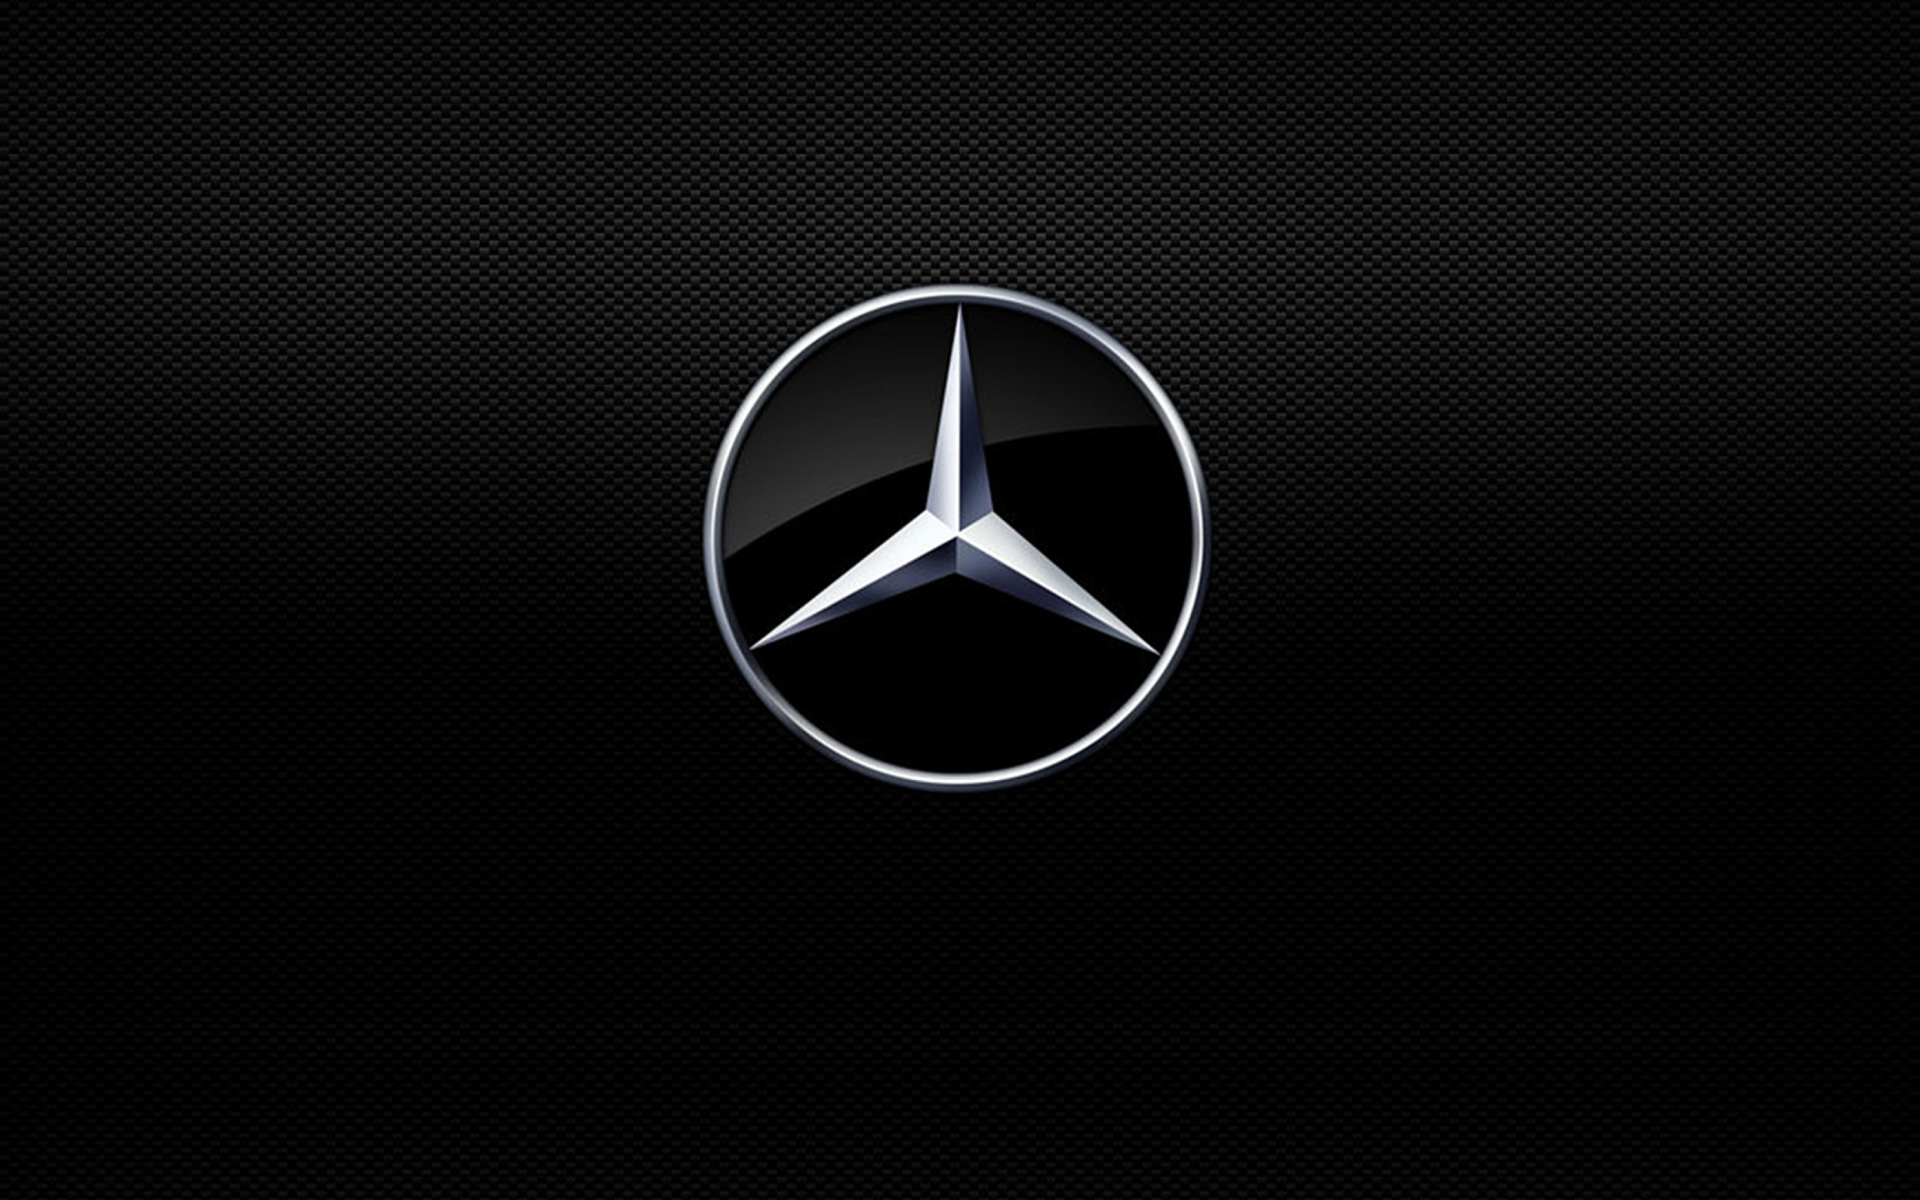 Wallpapers Wide Hd 1920x1080 Cars Mercedes Benz Logo Wallpapers Pictures Images